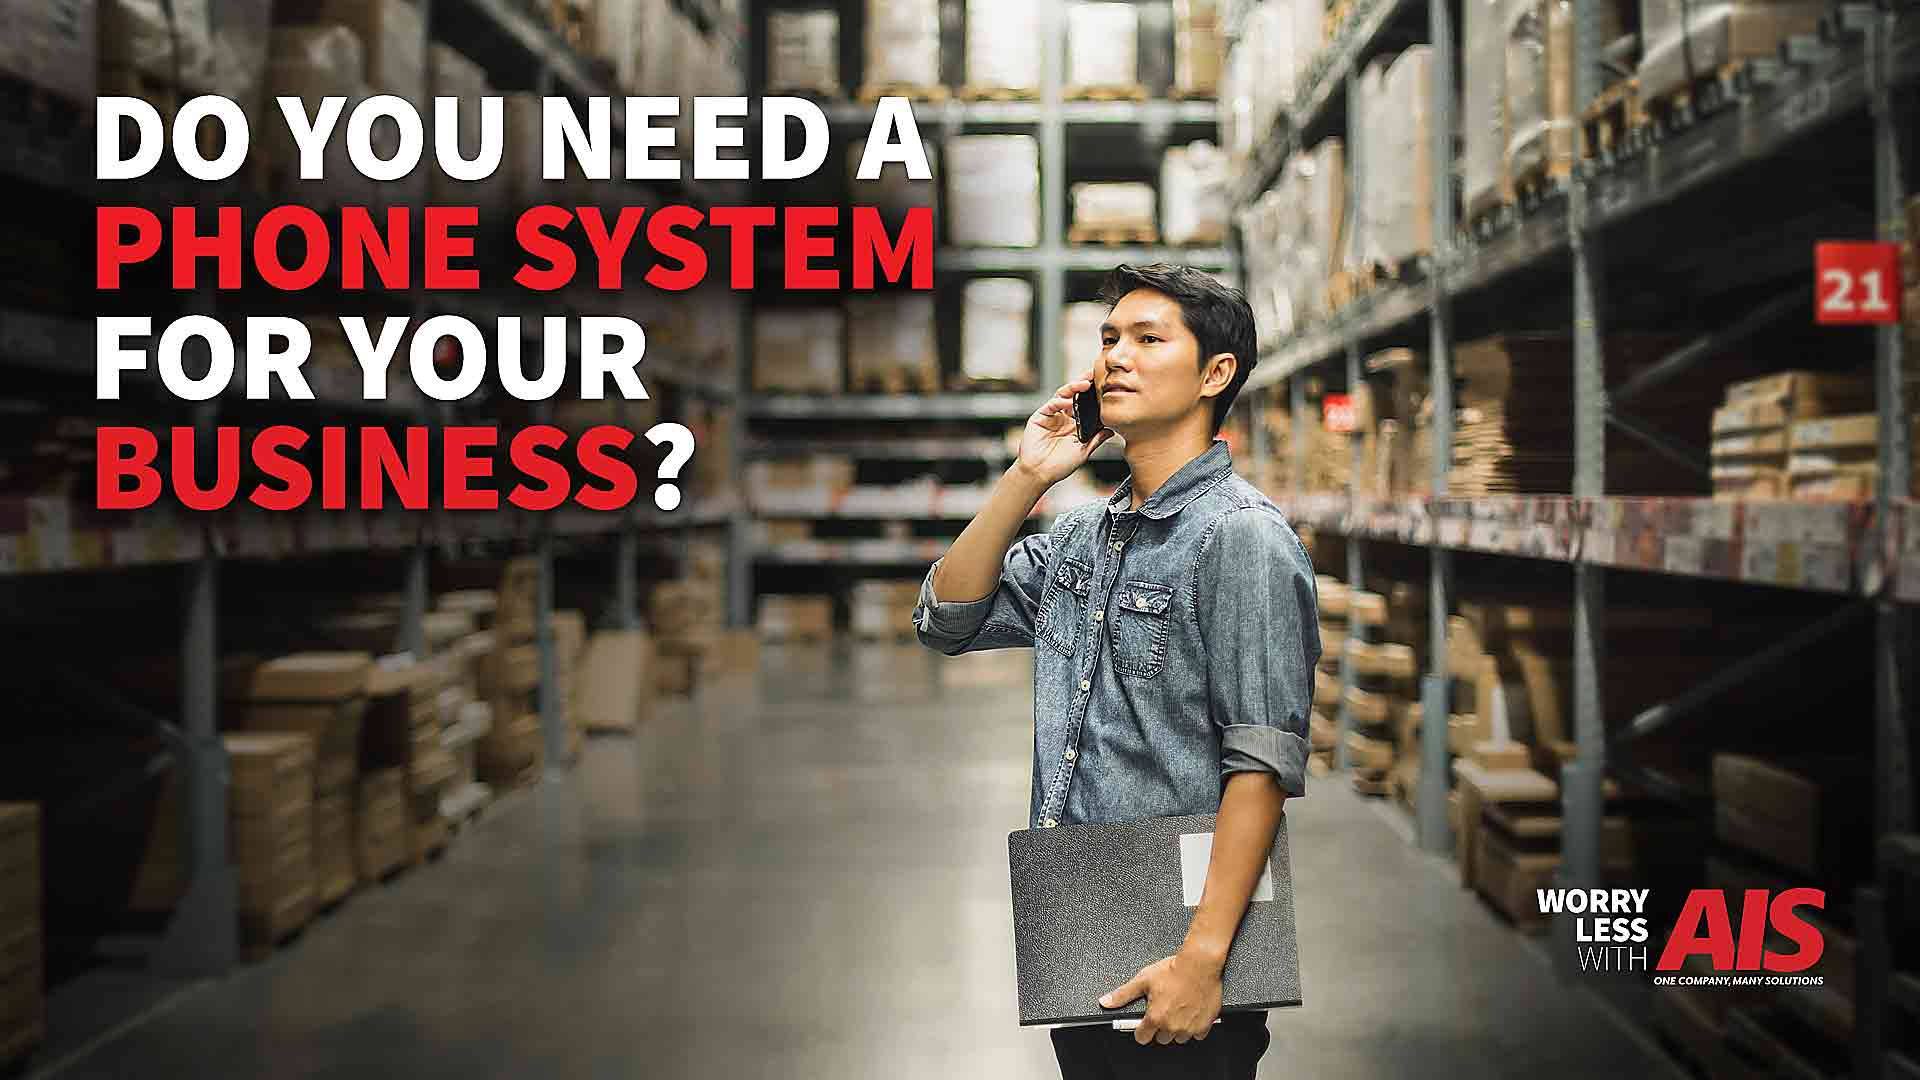 Do You Need A Phone System For Your Small Business (SMB)? Here's The 5 Signs